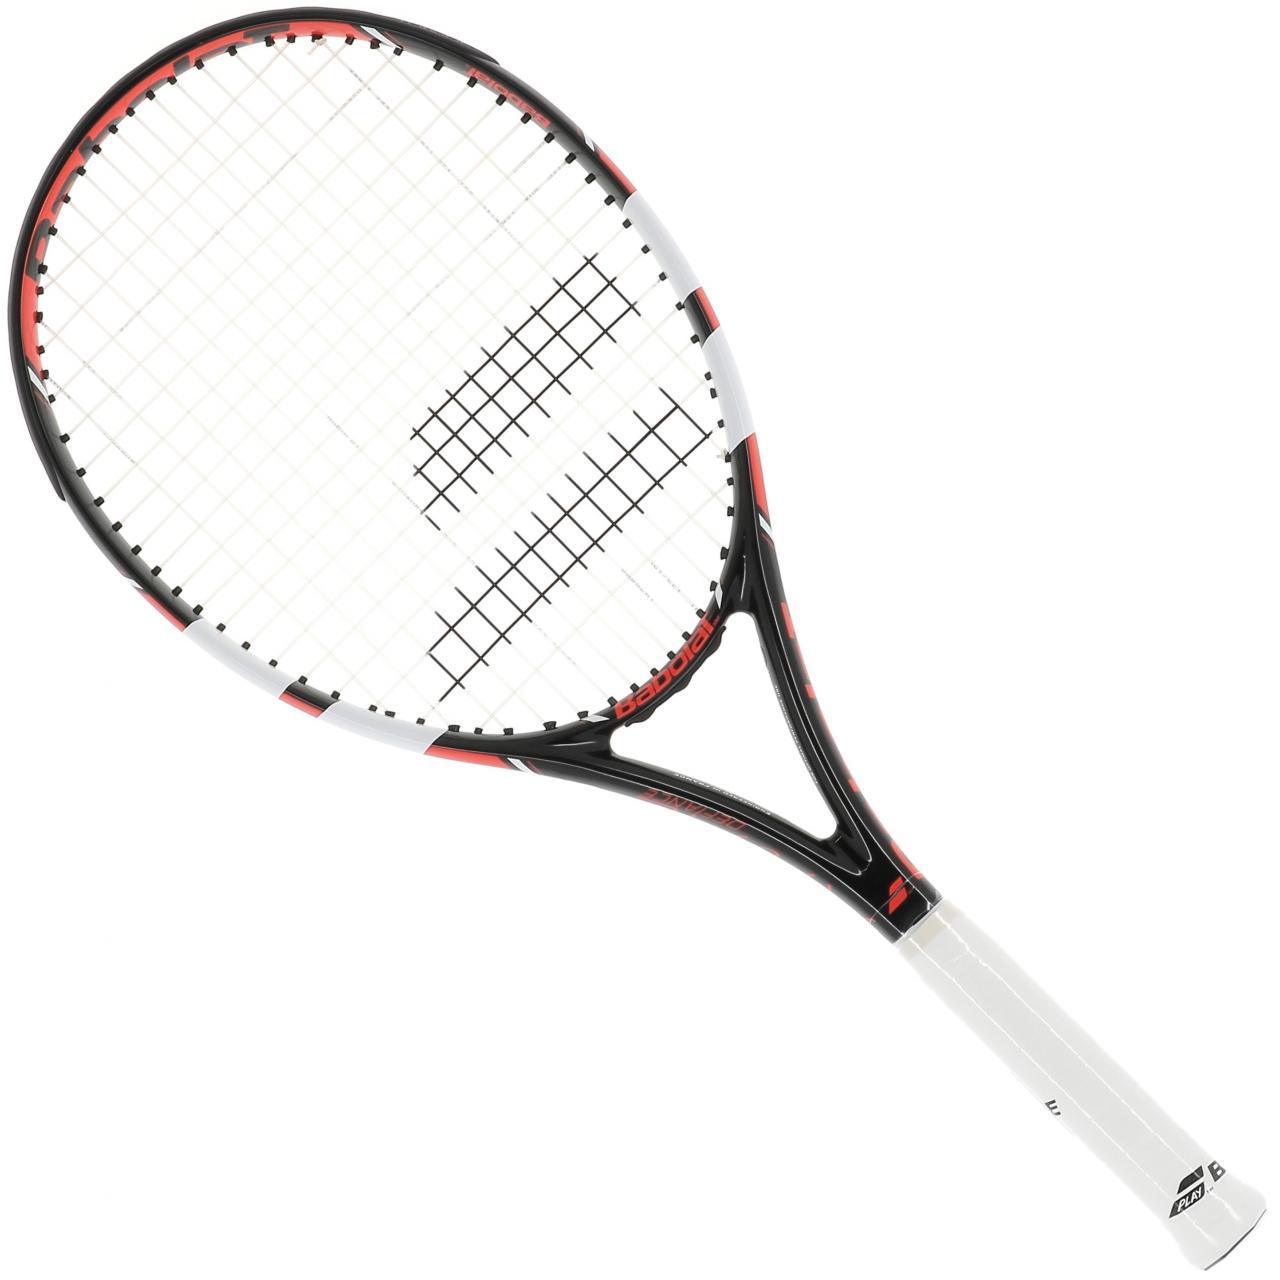 Tennis-Racket-Babolat-Rival-Defiance-nr-Rge-Black-83204-New